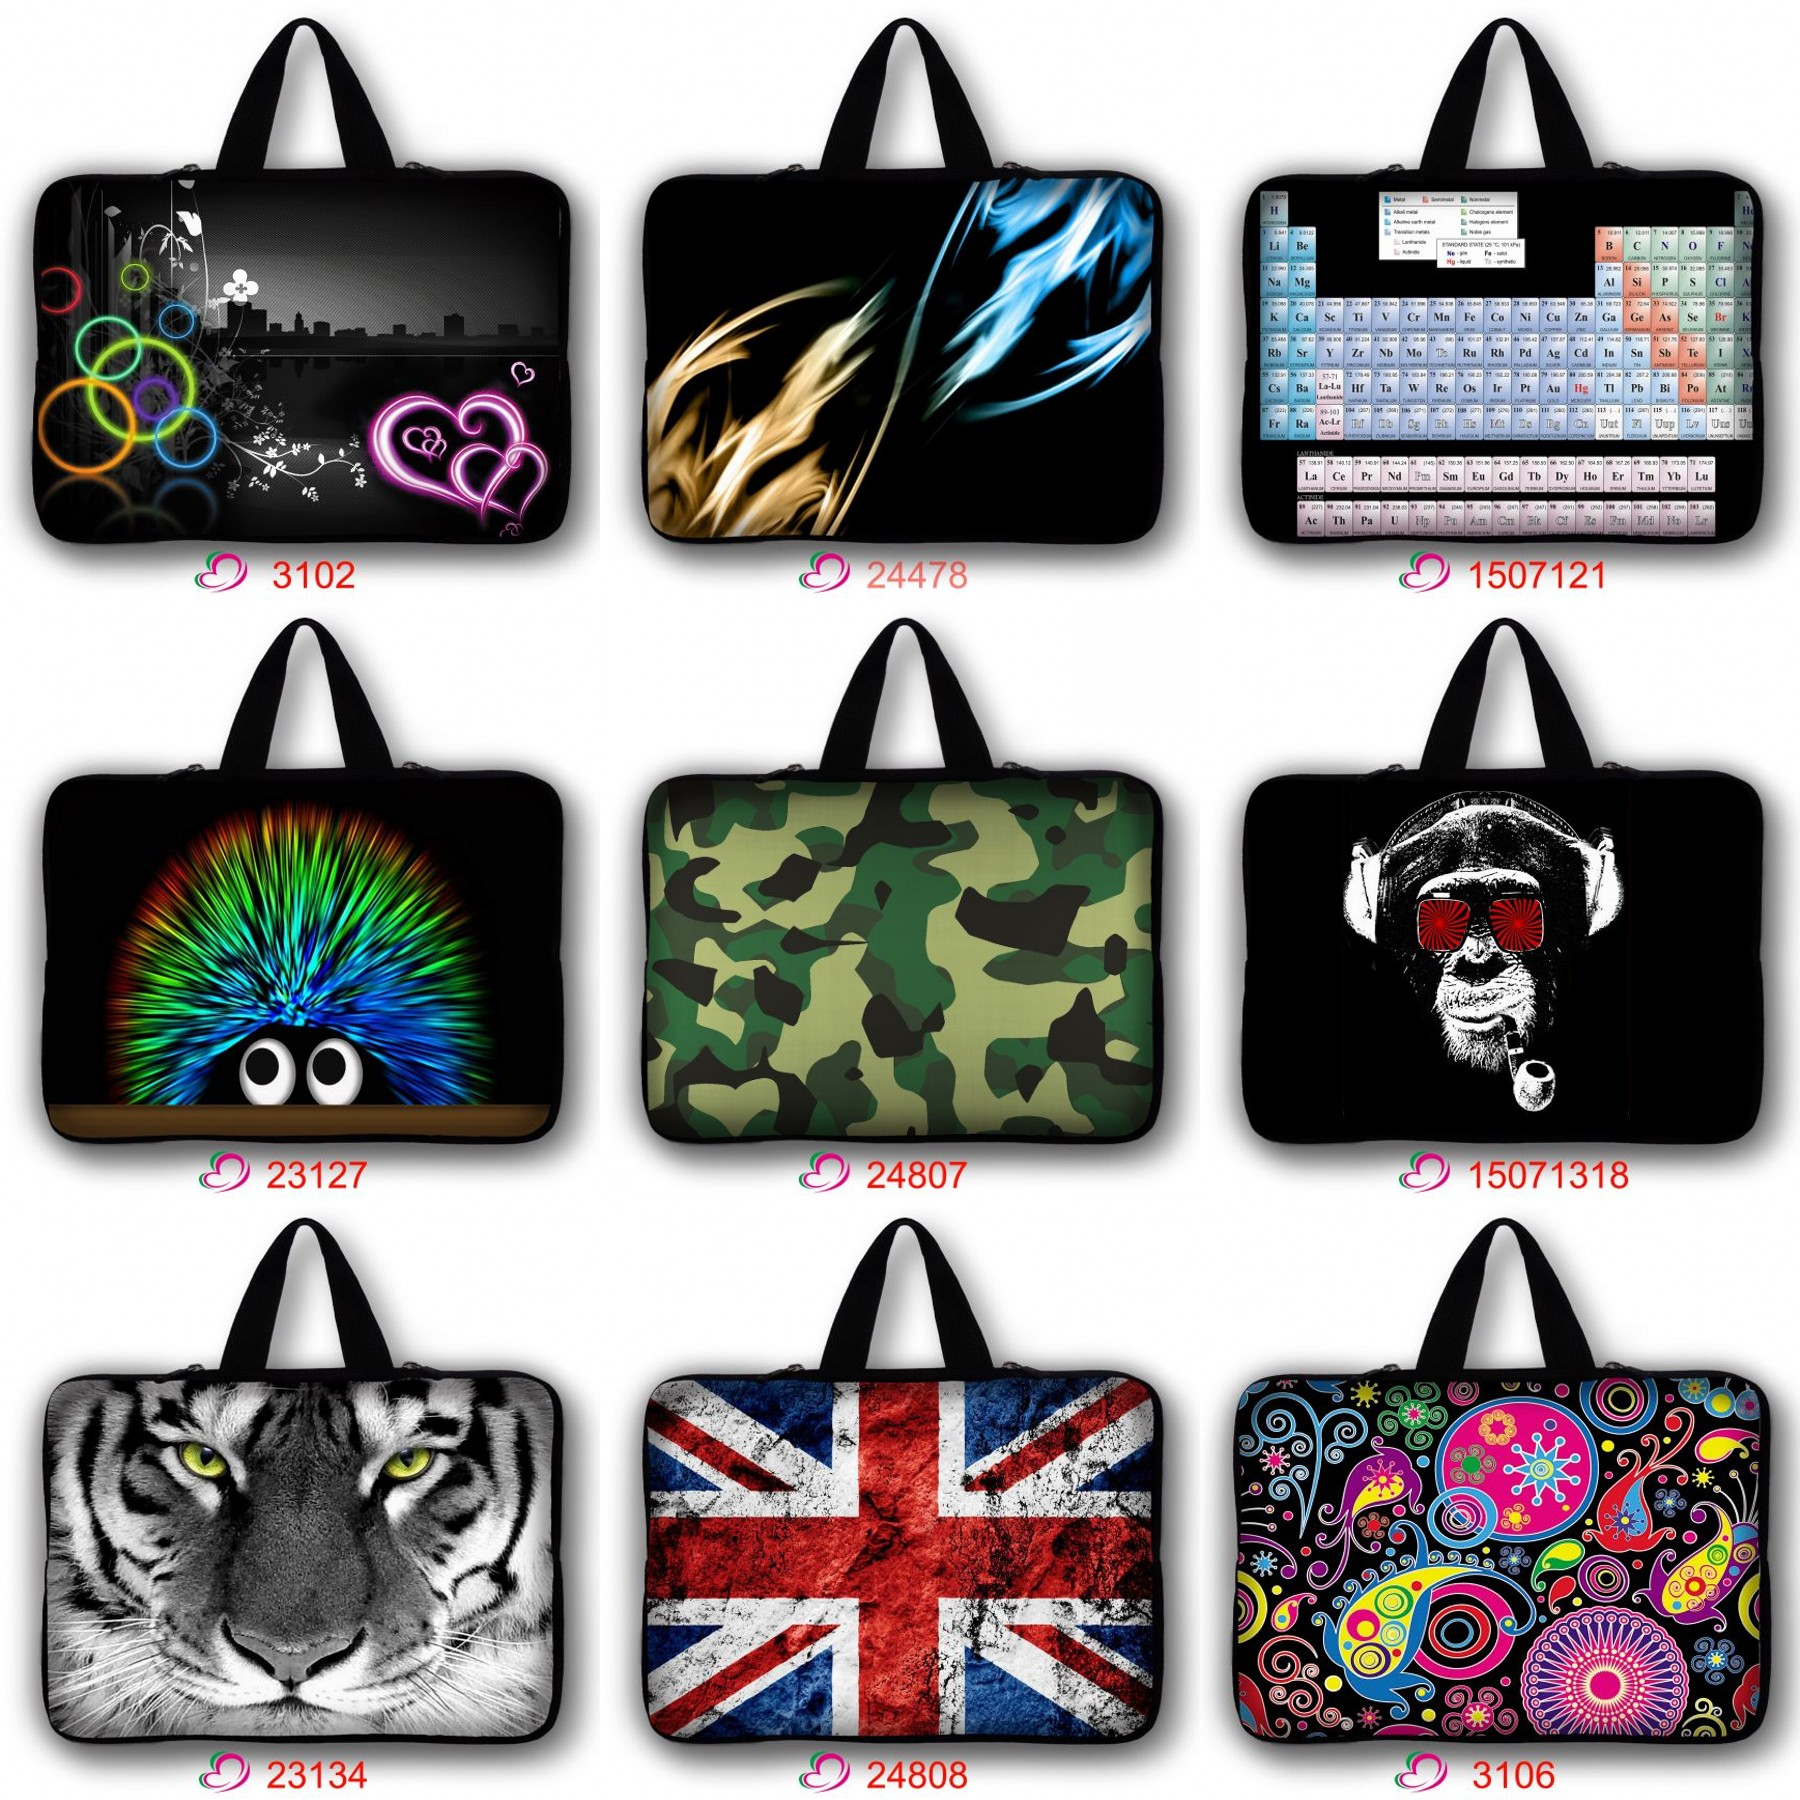 Laptop Sleeve Case Notebook Computer Pouch Cover Bag for ASUS Dell 11131415 17 inch Laptop Netbook Tablet